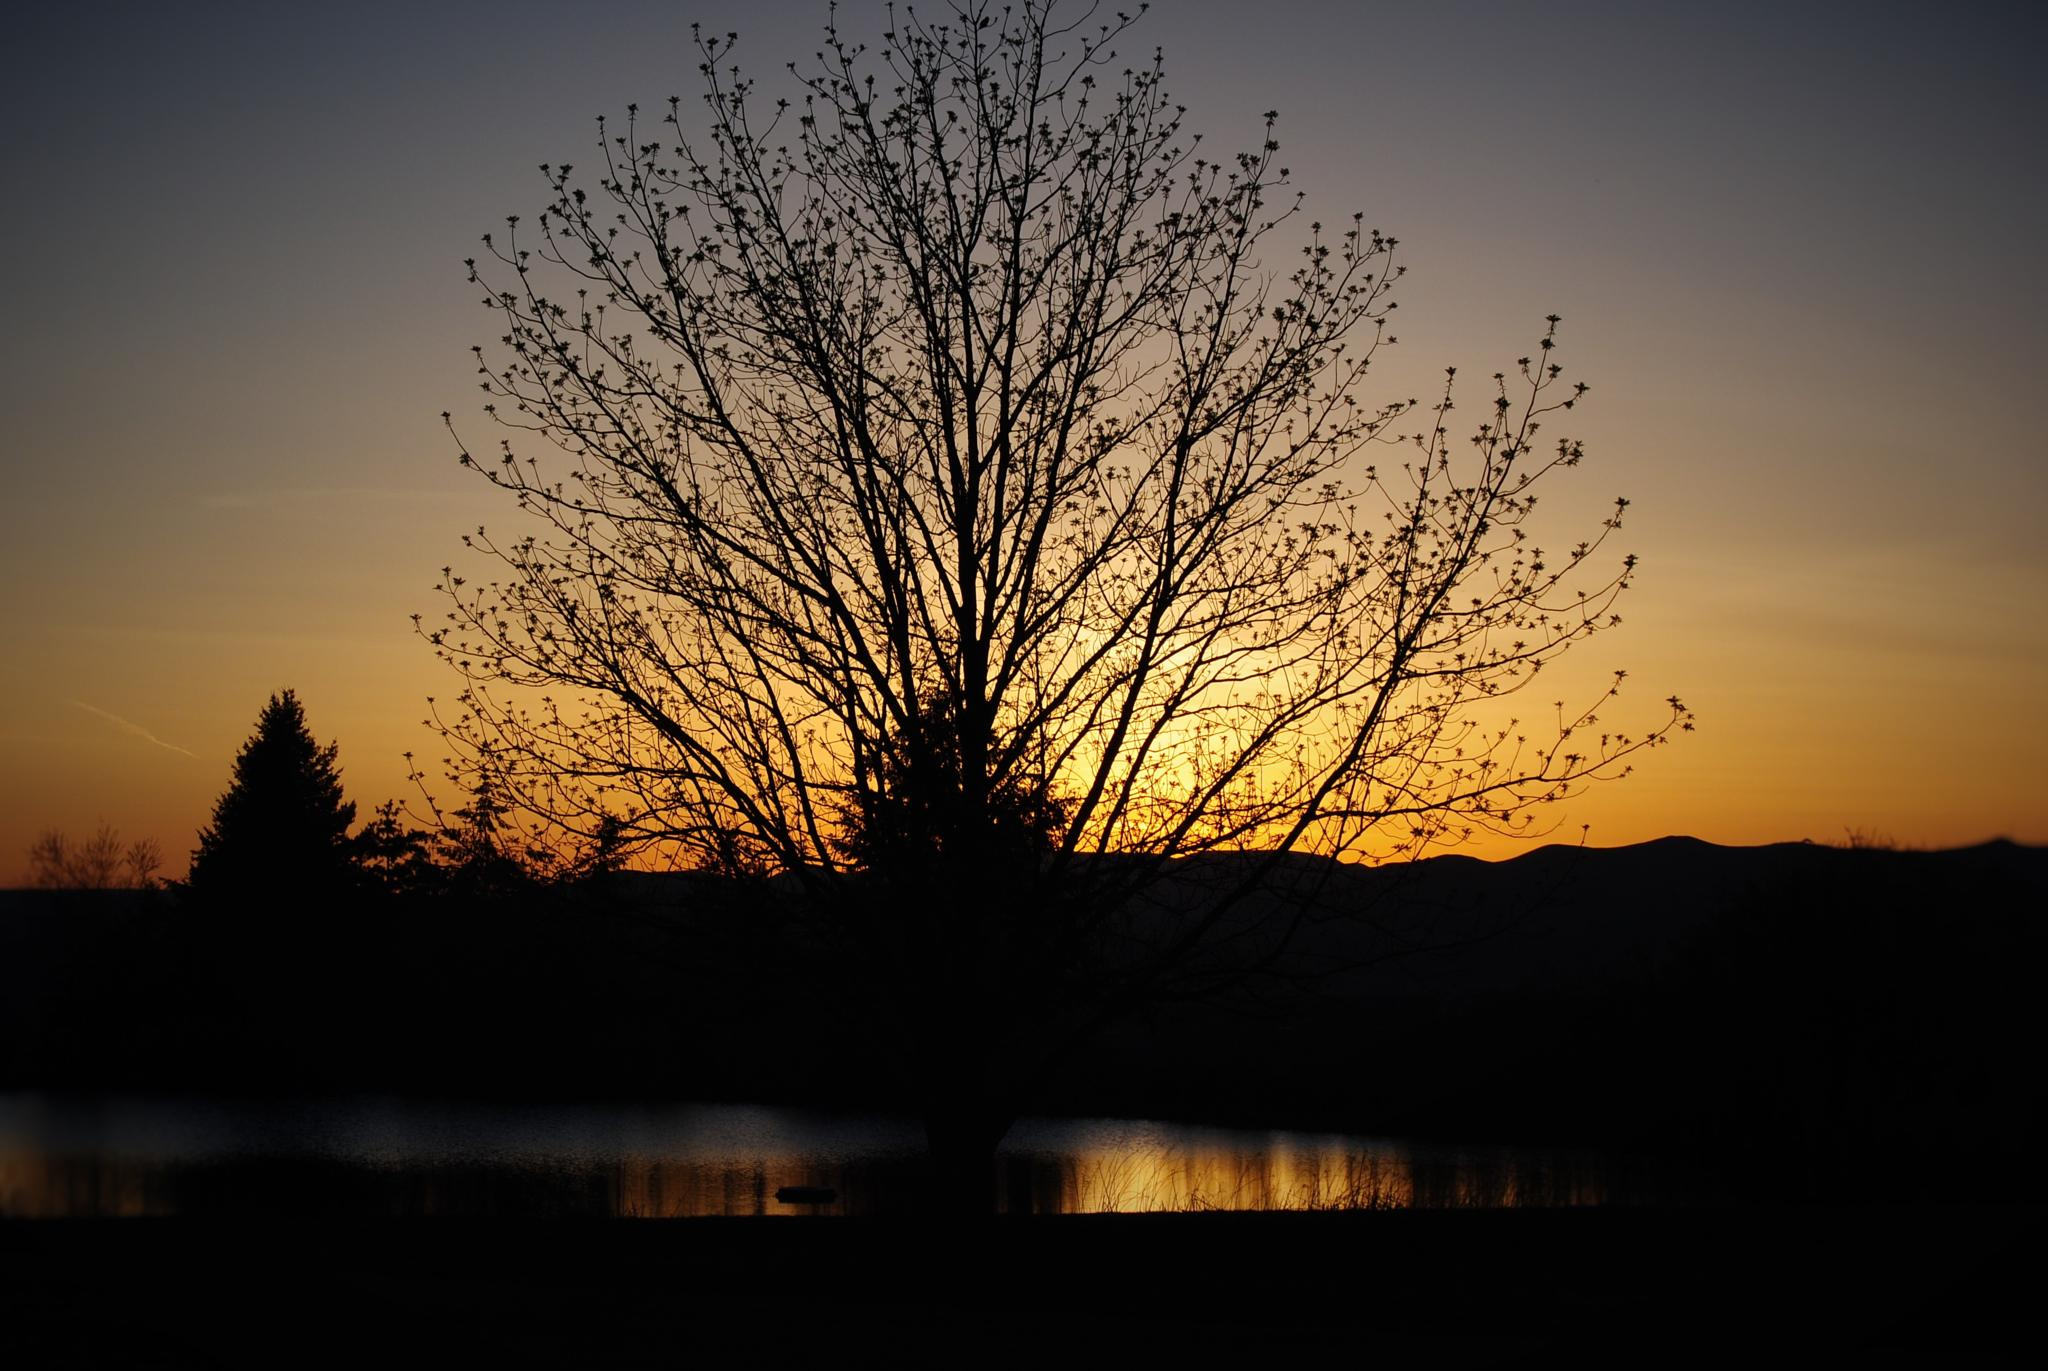 Sunset at the golf club by sandra.n.erhardt